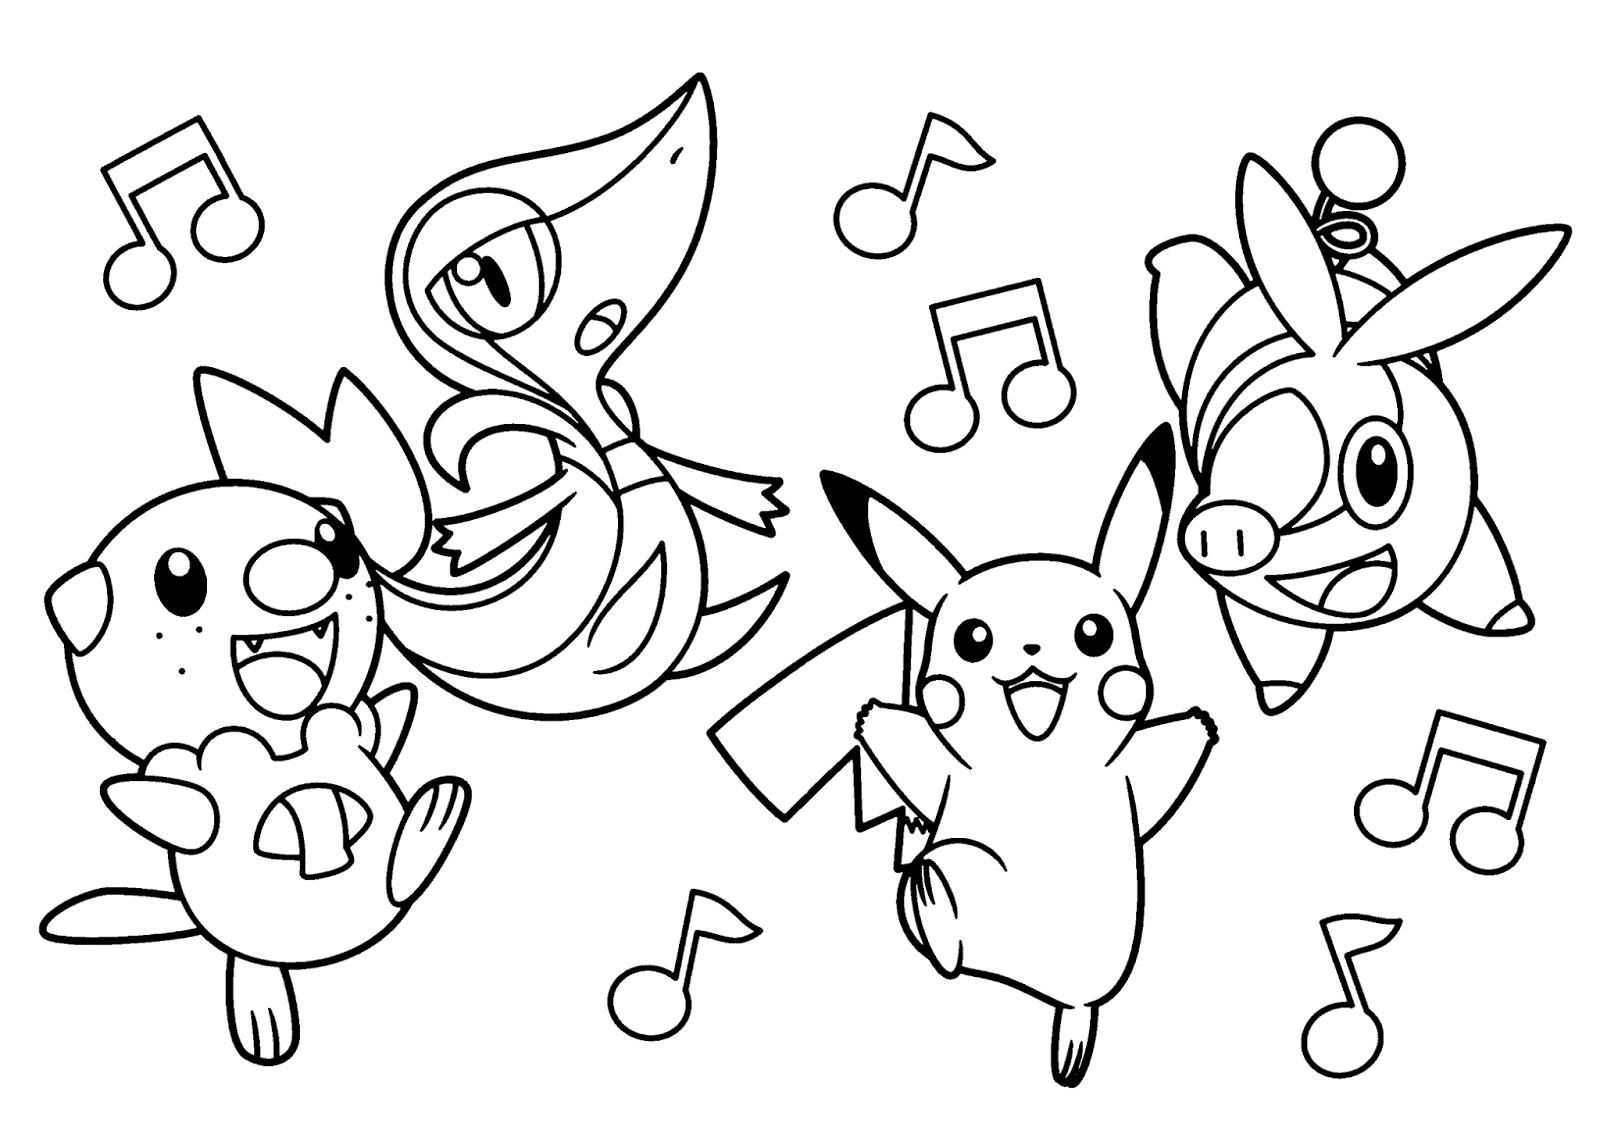 Gigantic Full Size Pokemon Coloring Pages Free 1212 Unknown